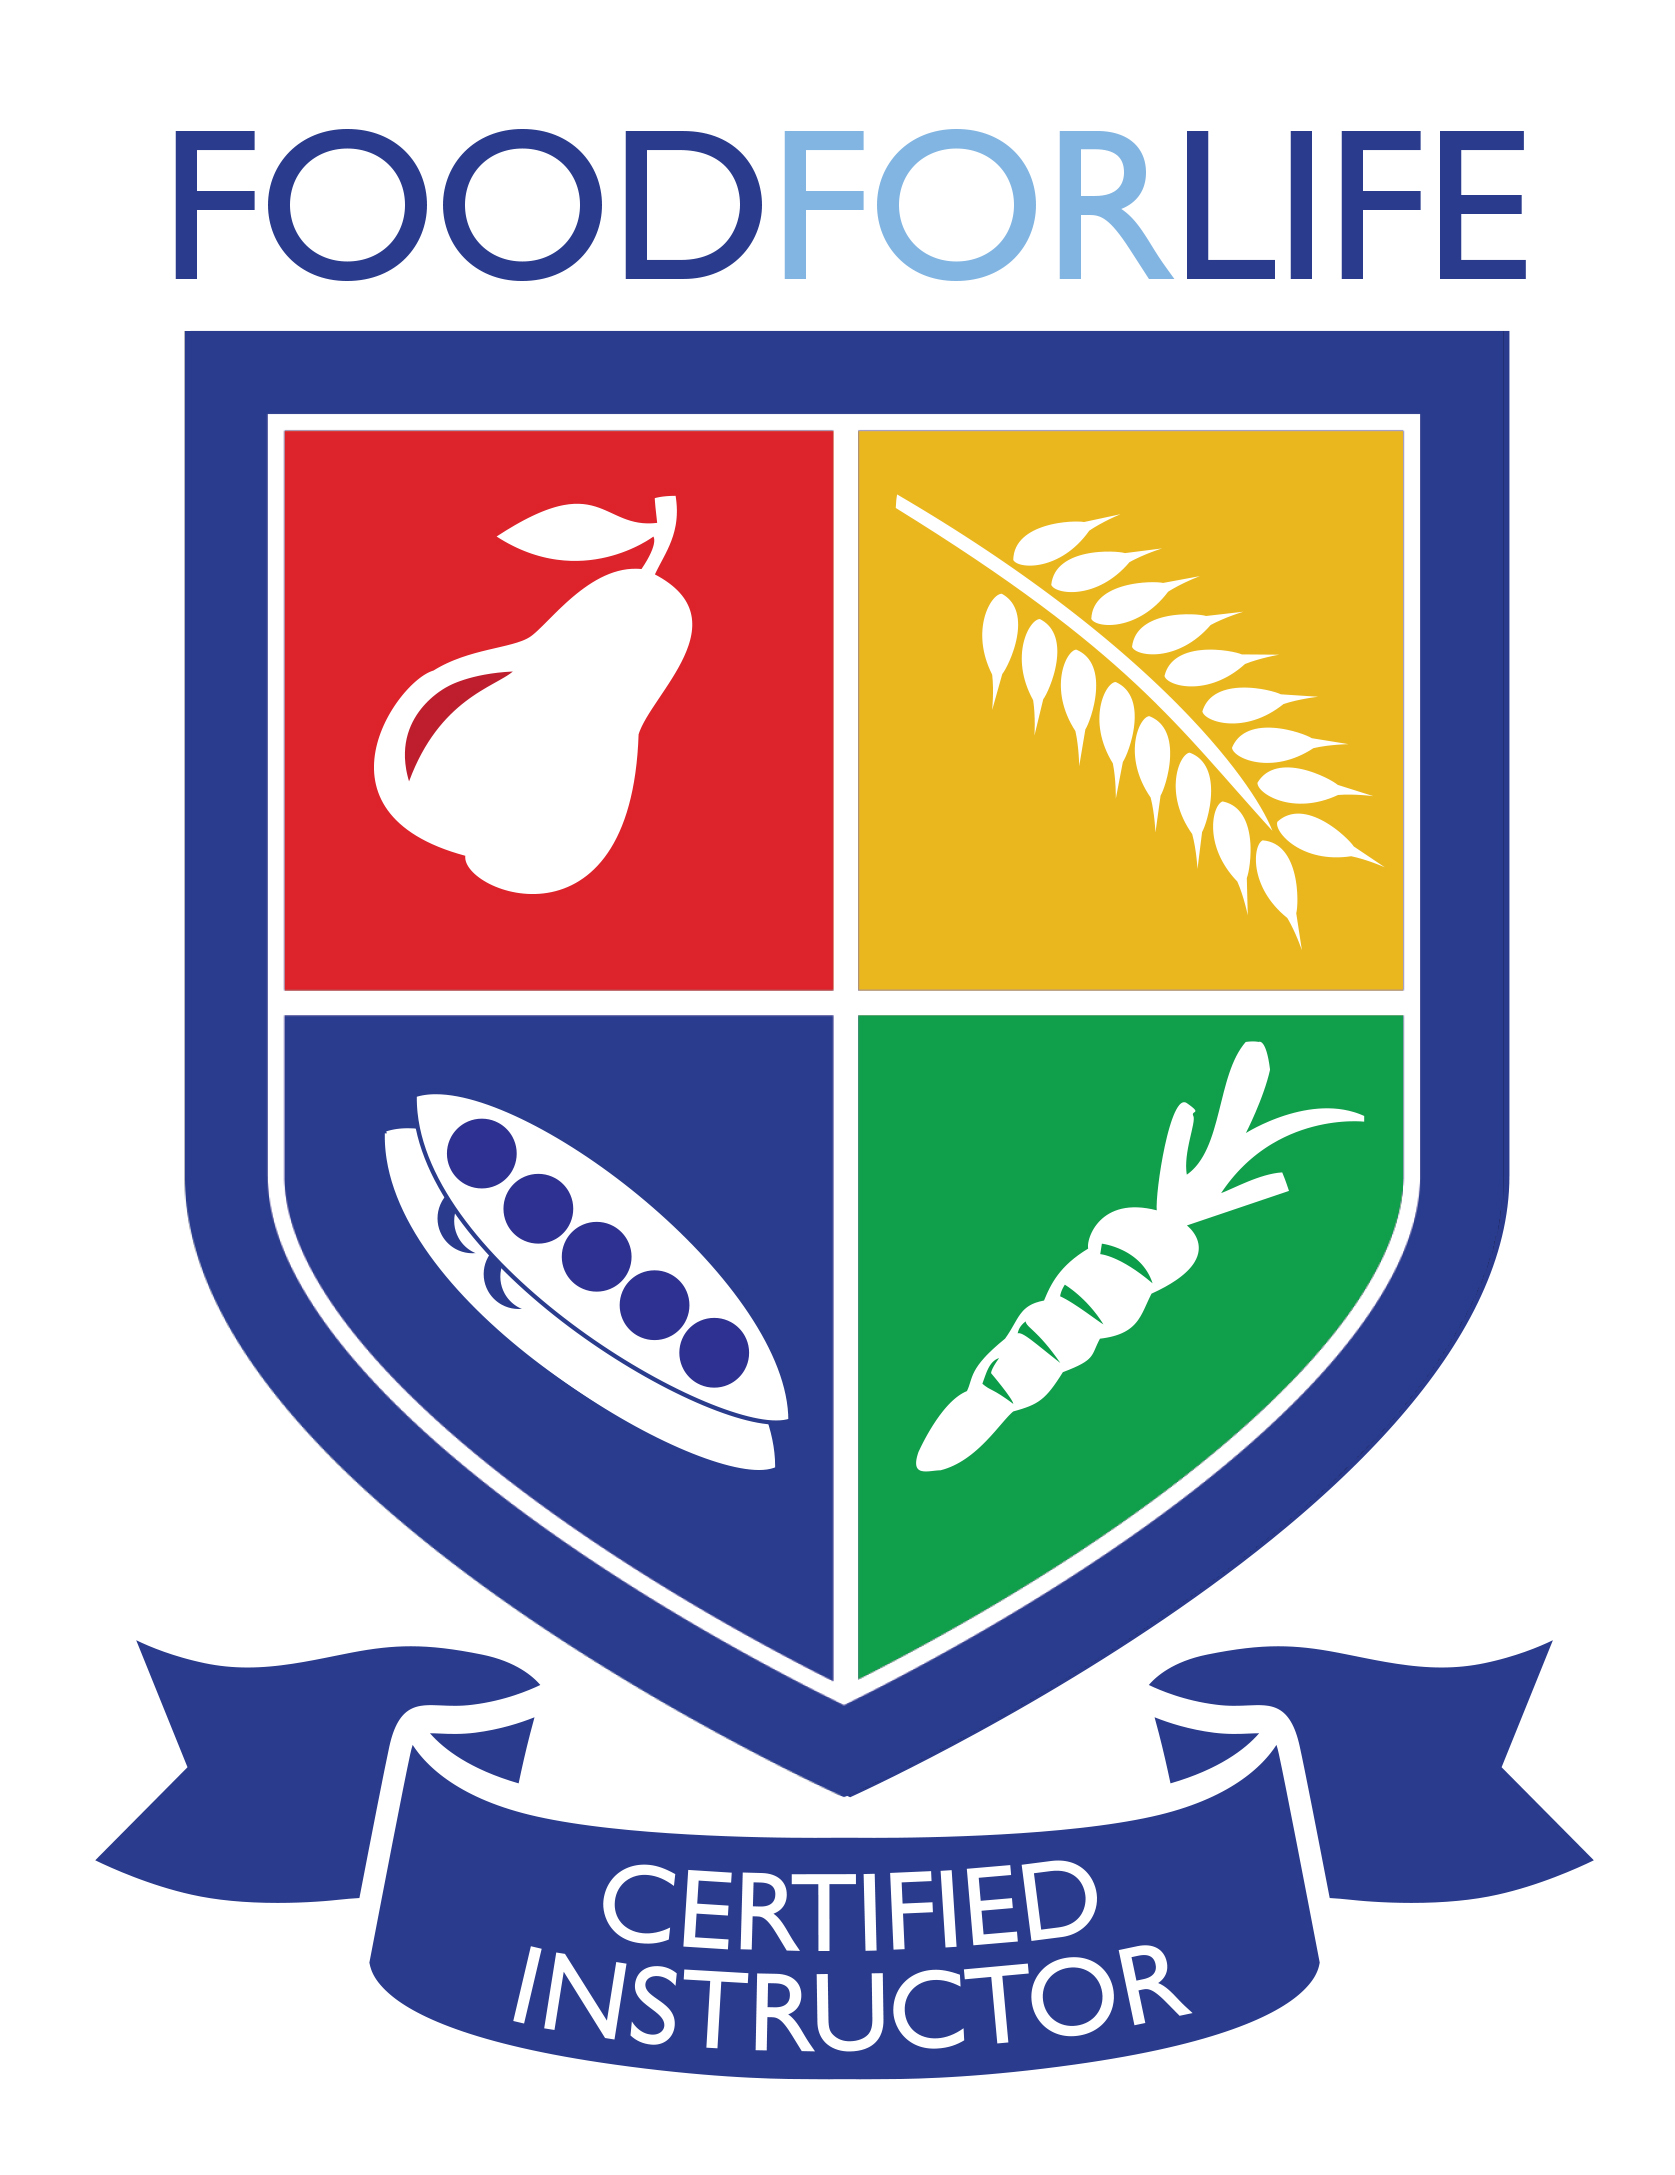 Food-for-Life-Certified-Instructor-Logo.